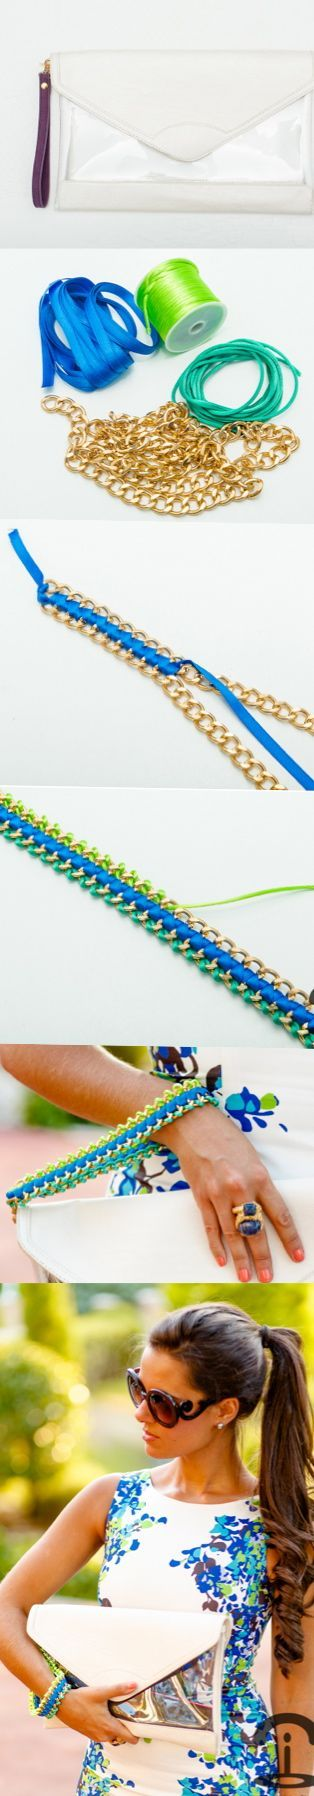 Crimenes de la Moda: DIY Neon Chain Clutch